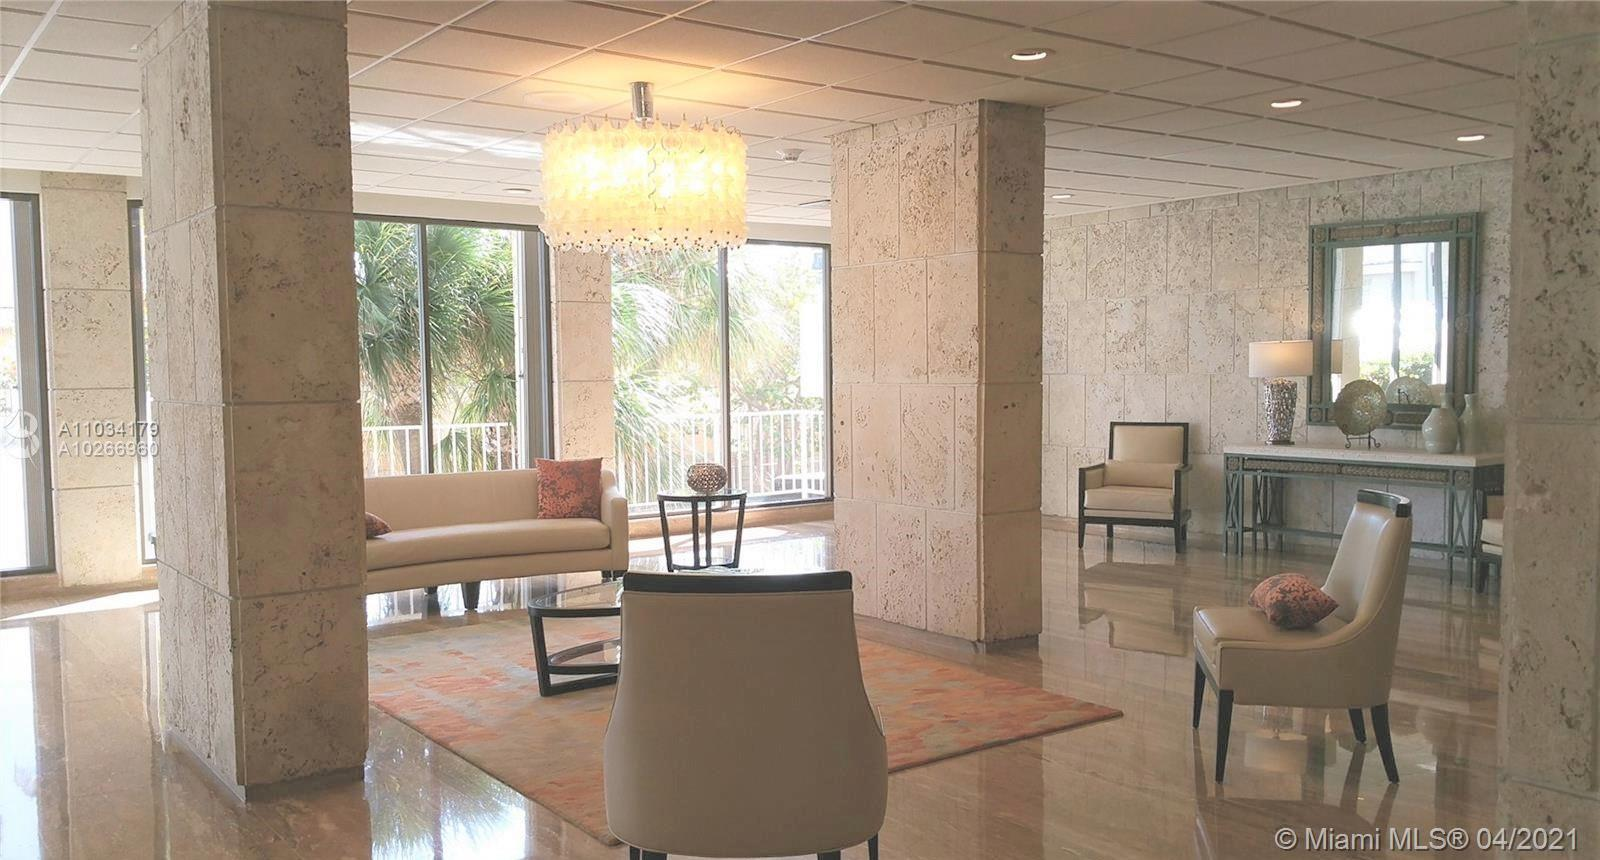 Oceanfront Building! Beautiful 1 Bedroom, 1.5 bath unit with spacious living areas, and a huge maste